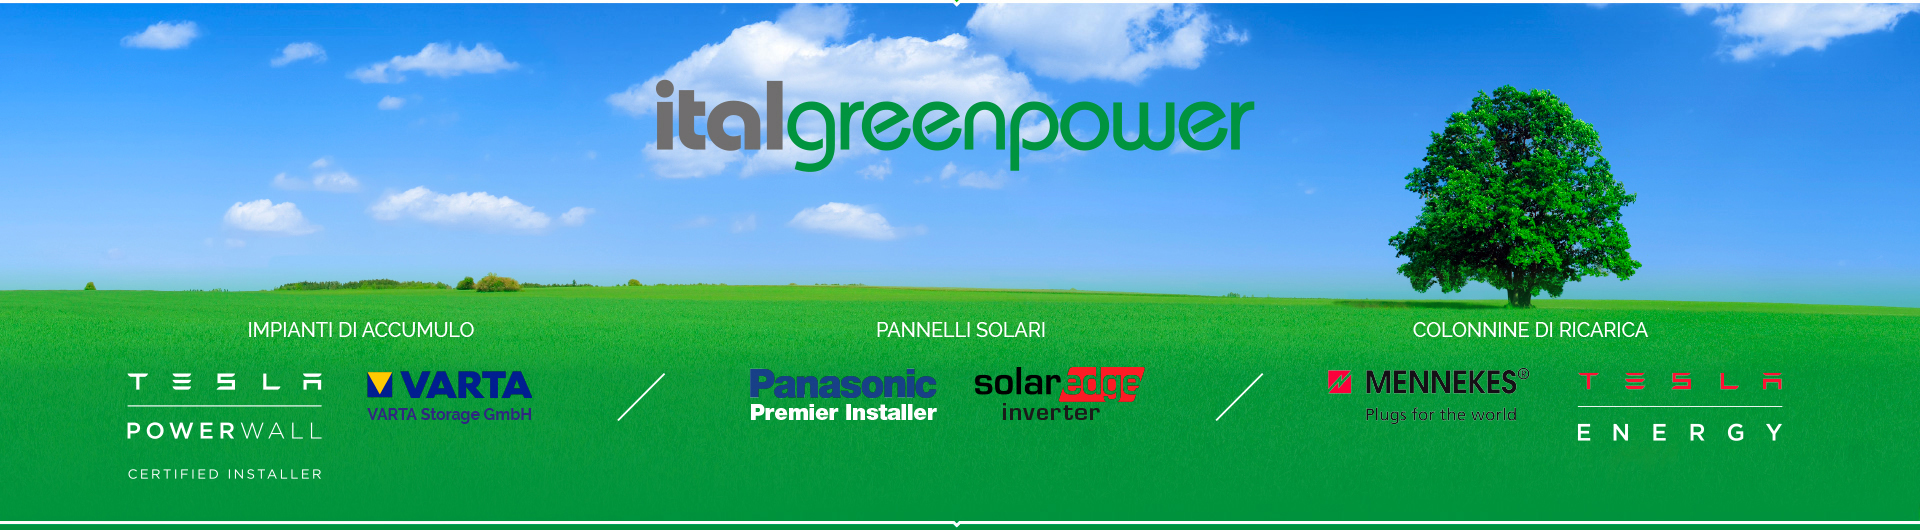 Italgreenpower